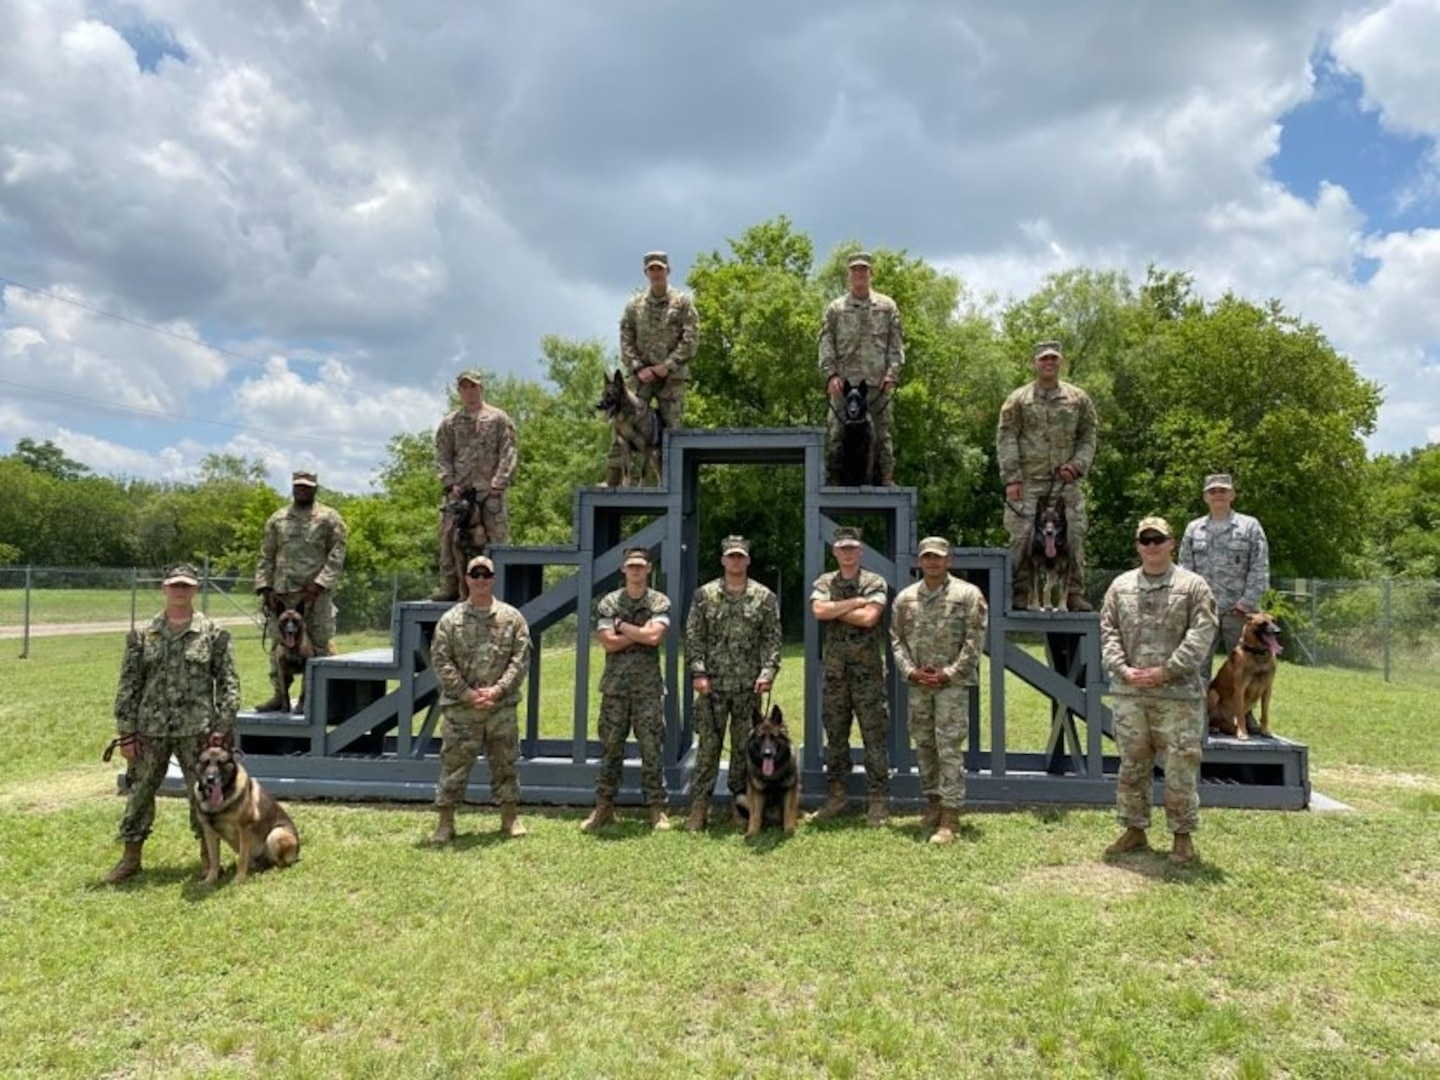 Military working dog handler training students from the Army, Air Force, Marine Corps and Navy pose for a photo following a K-9 demonstration for the Fair Oaks, Texas, Rotary Club June 3, 2020, at Joint Base San Antonio-Lackland.